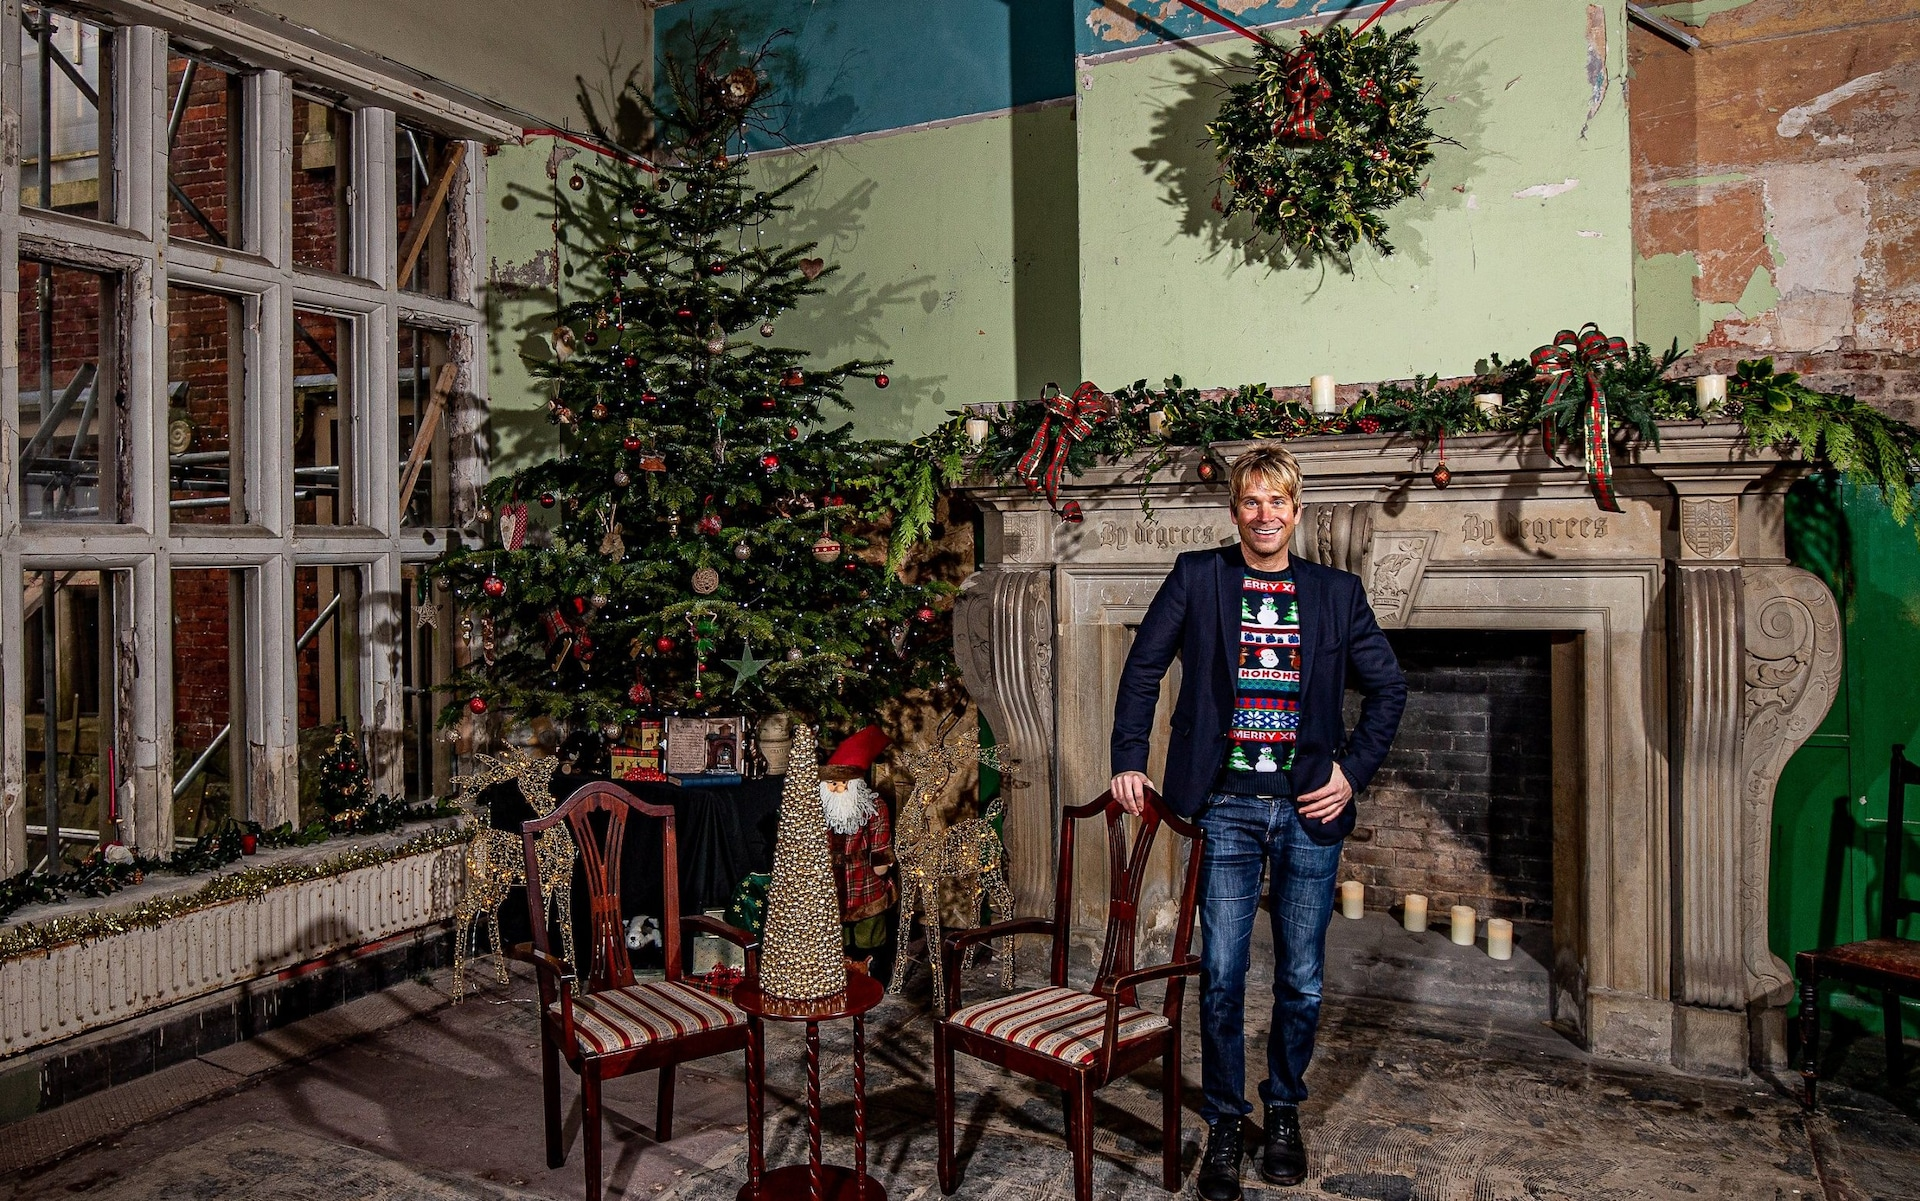 The Telegraph: How I rebuilt 'Downton Shabby' in time for its first Christmas in 100 years: Hopwood Hall Rochdale